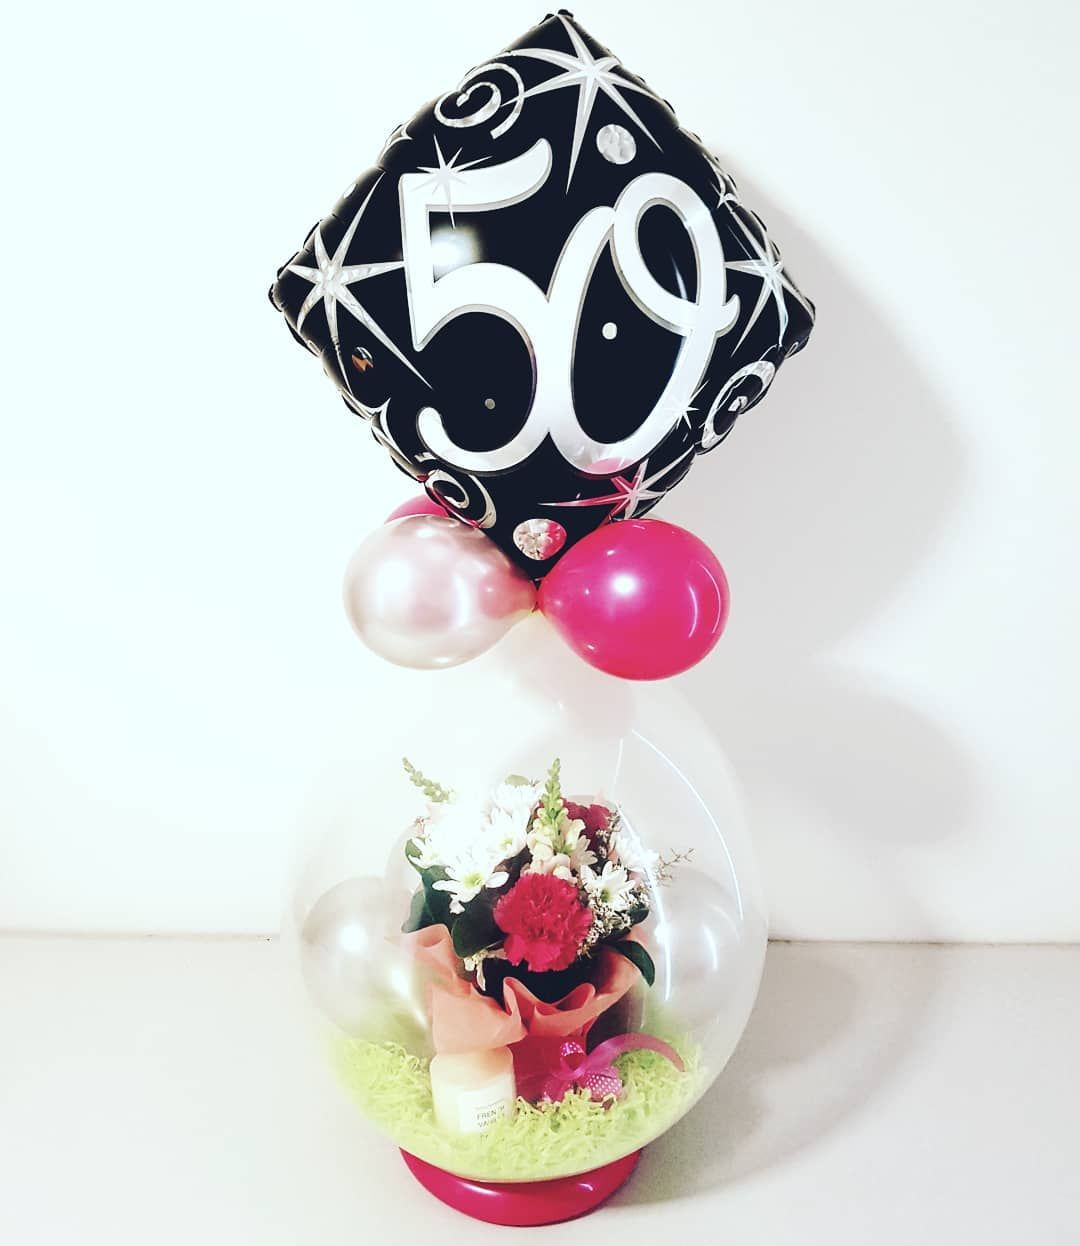 A 50th Flower Birthday Balloon With A Candle Being Taken Up The